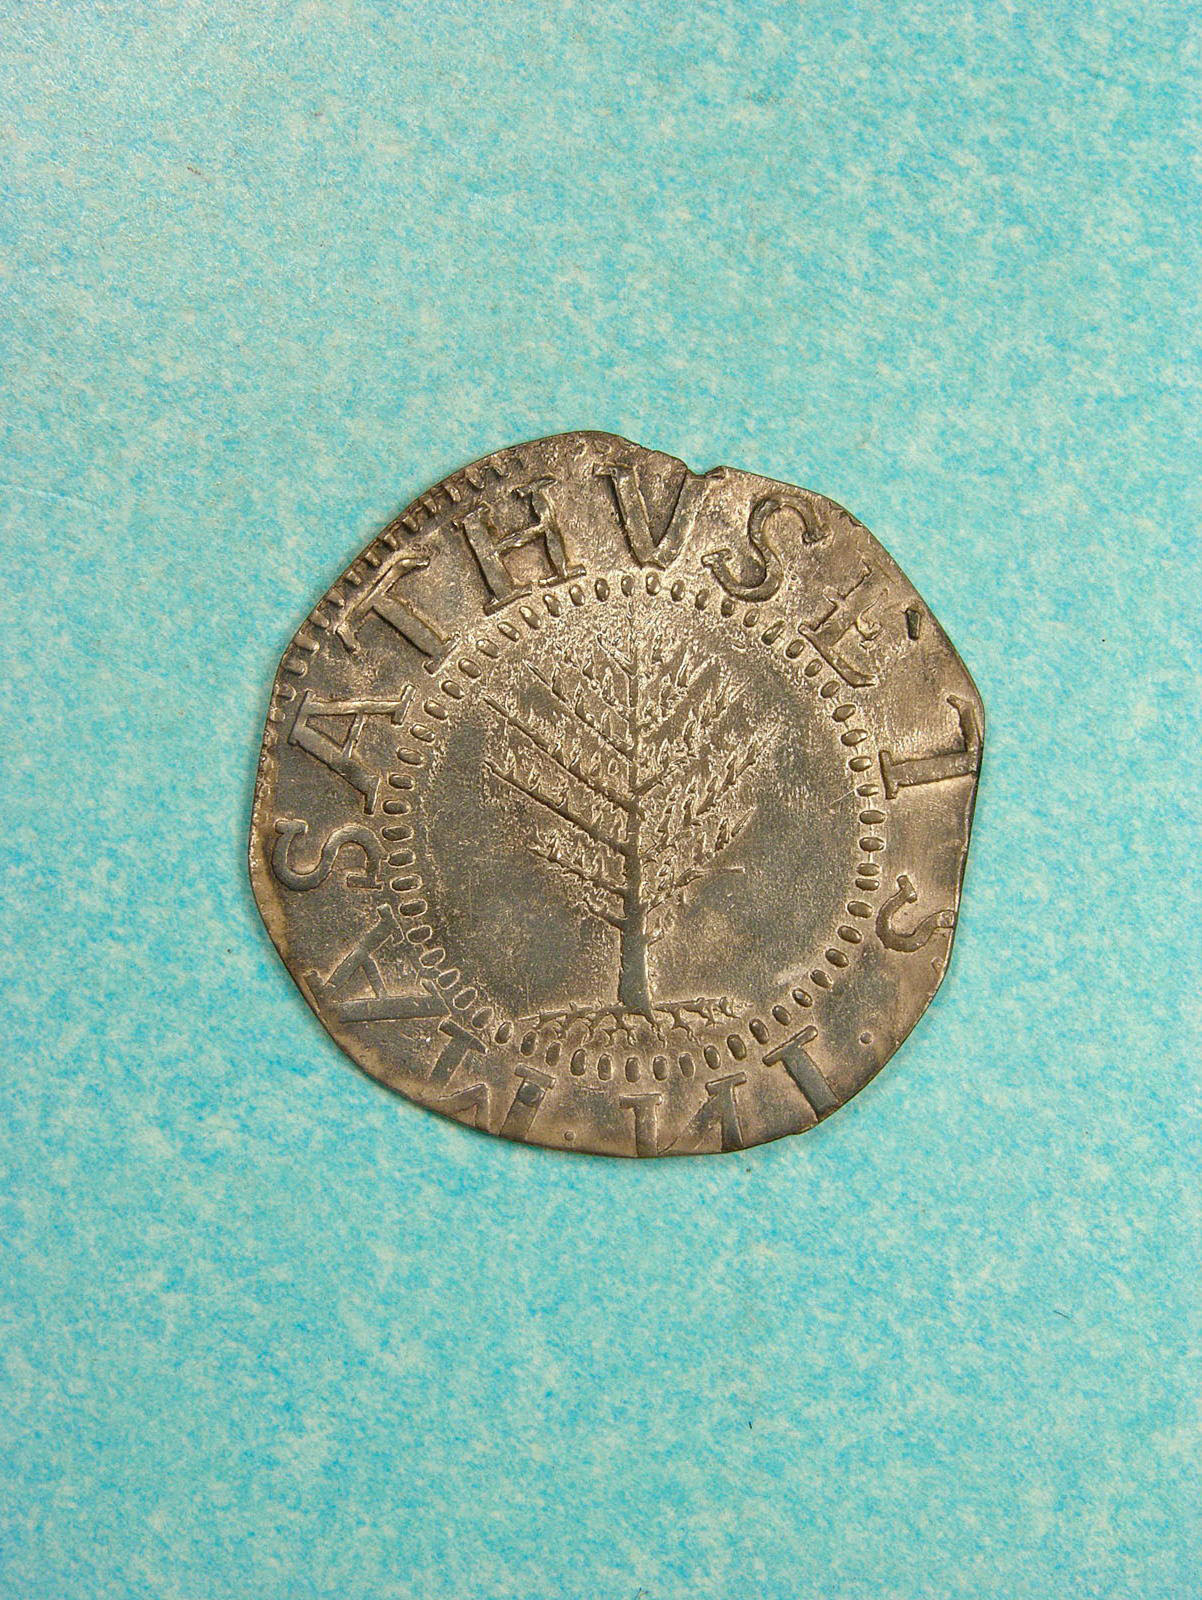 Silver coin with pine tree image